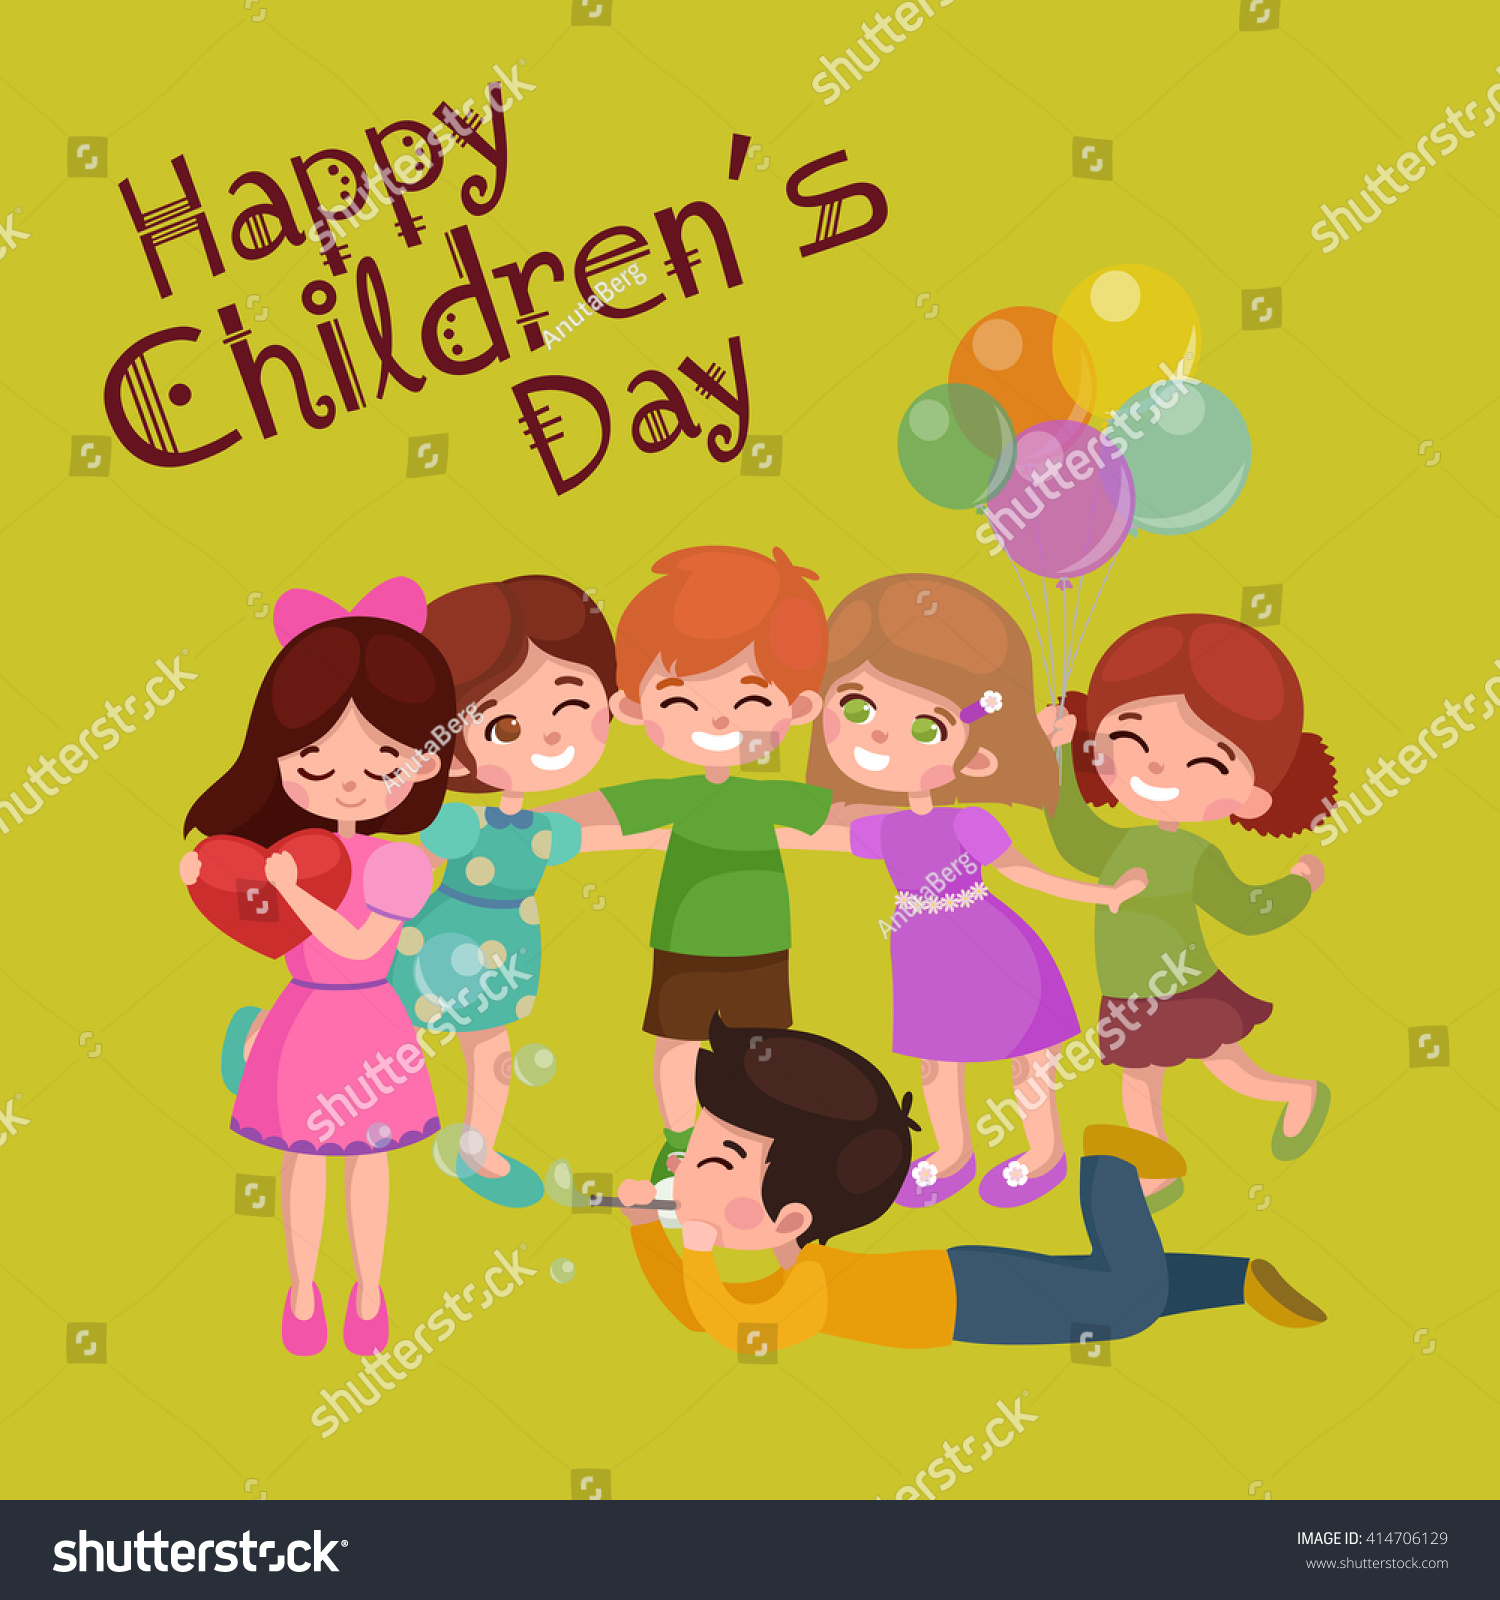 Happy Childrens Day Greeting Card Design Stock Vector Royalty Free